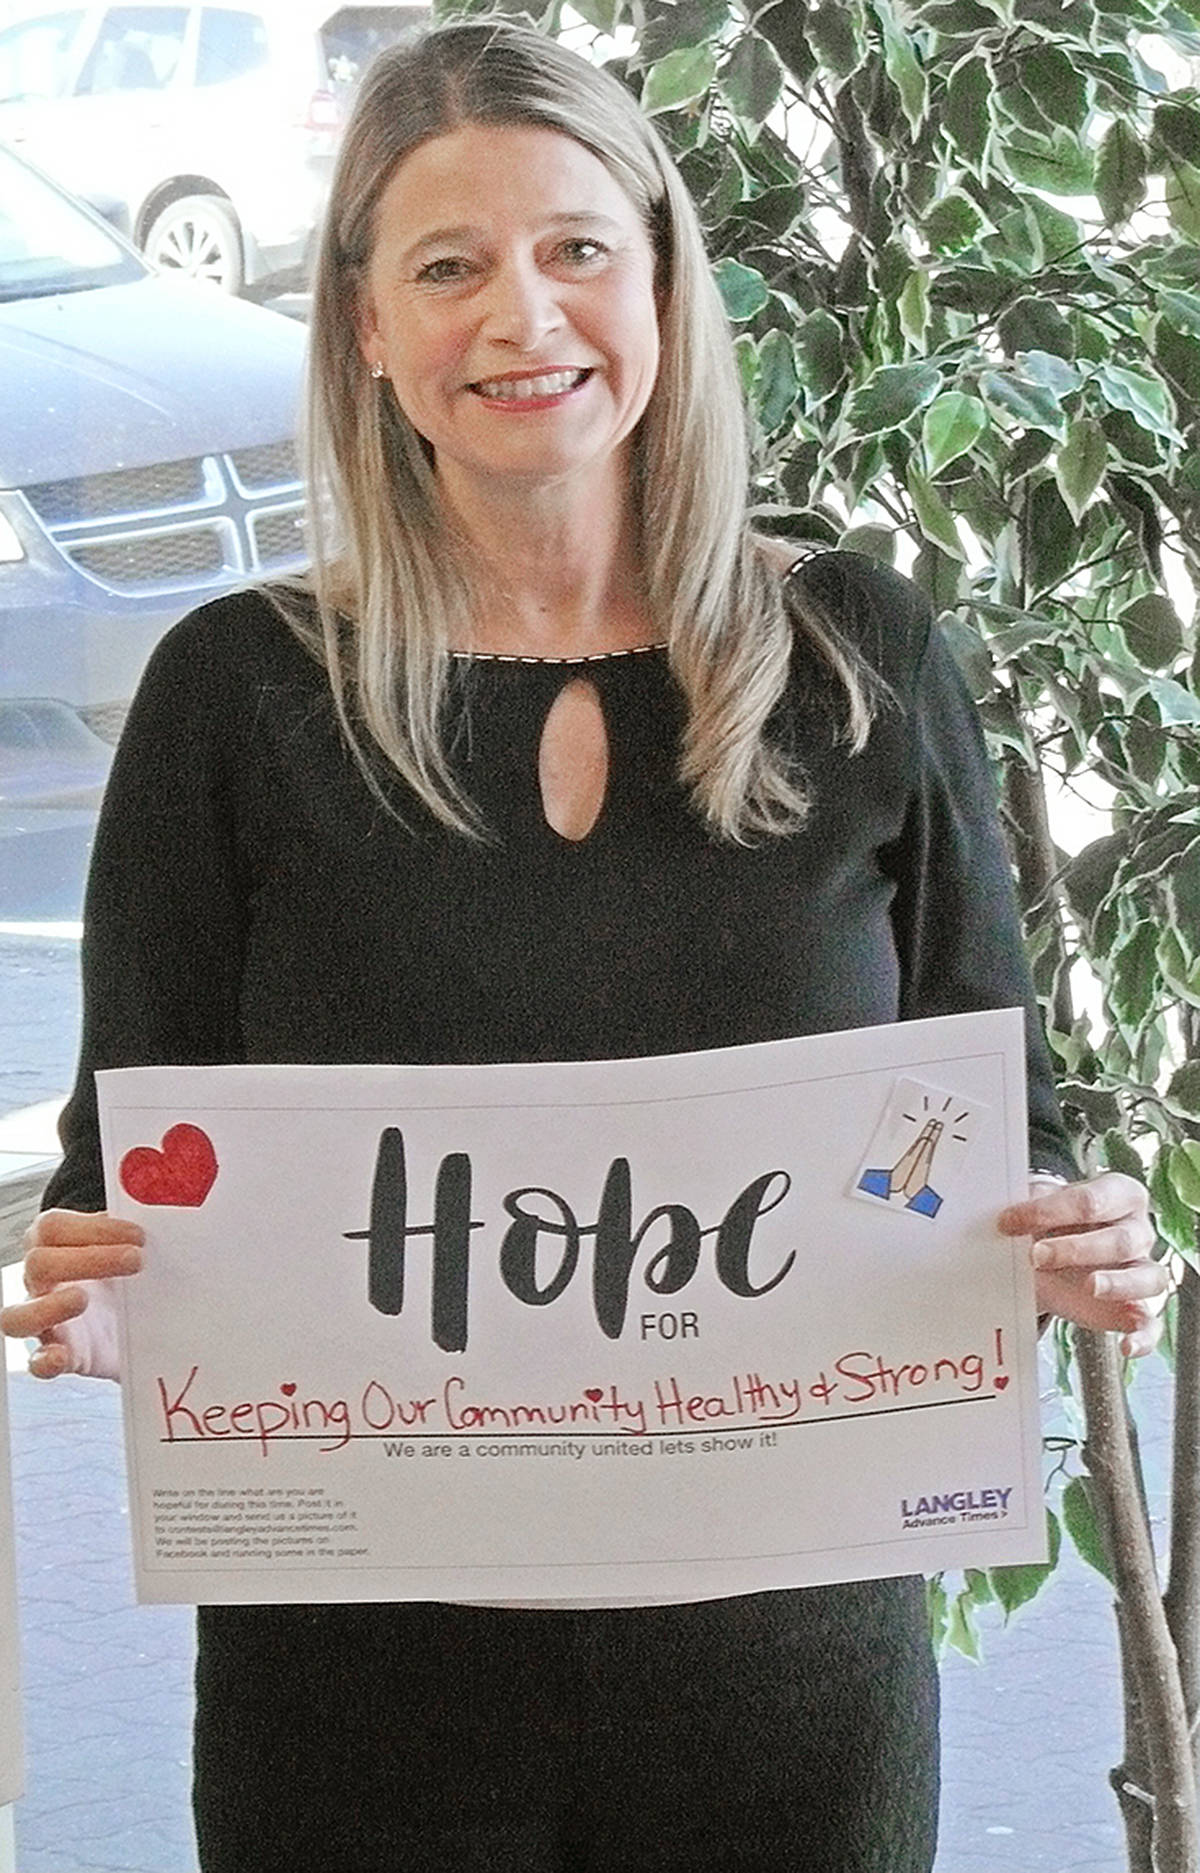 Langley Advance Times sales consultant Tammy Berry hung this sign in the front office window expressing her Hope For keeping our community healthy and strong. (Dan Ferguson/Langley Advance Times)